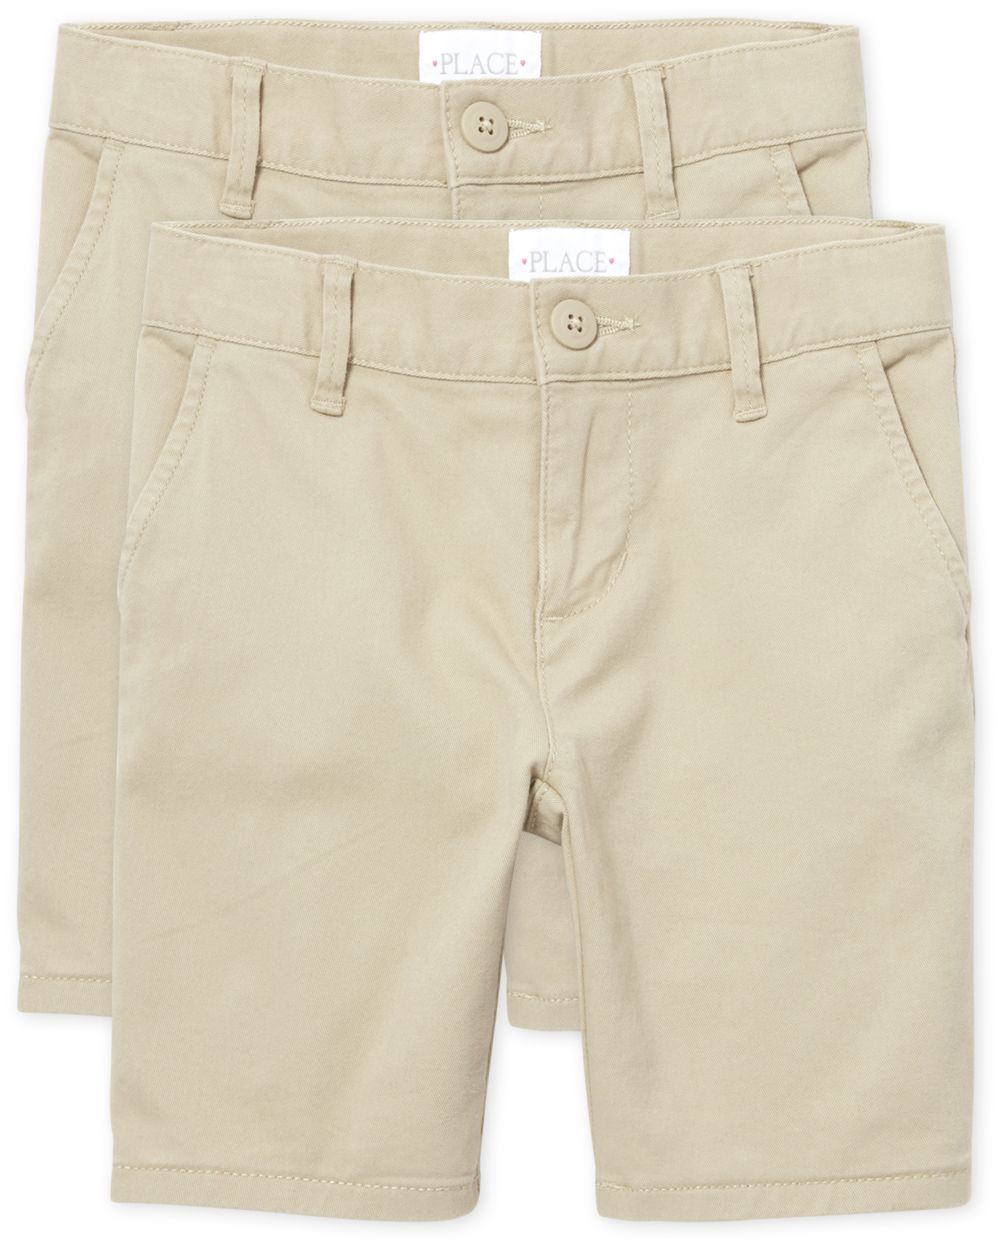 Girls Uniform Chino Shorts 2-Pack